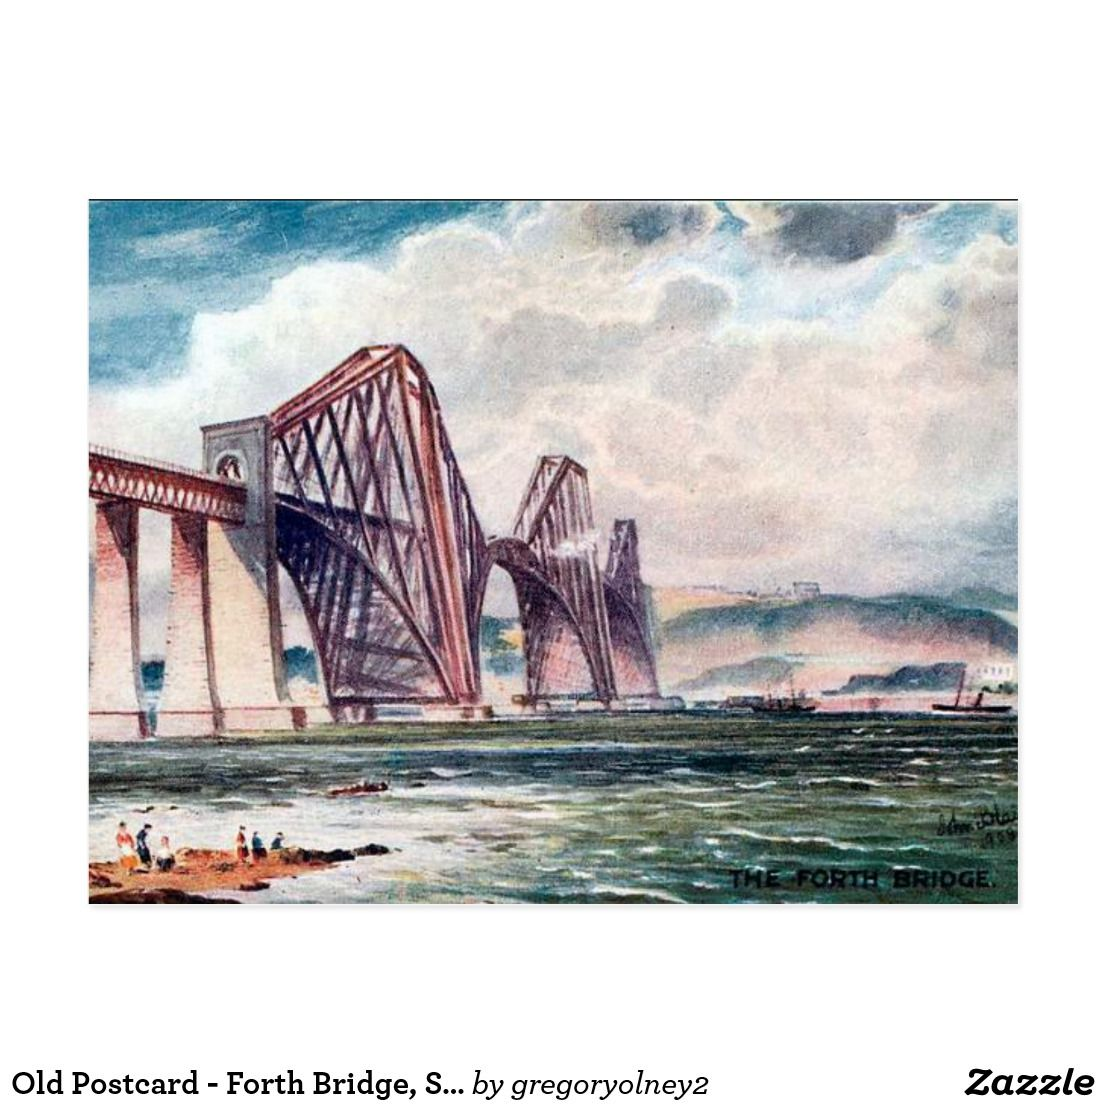 Old Postcard - Forth Bridge, Scotland